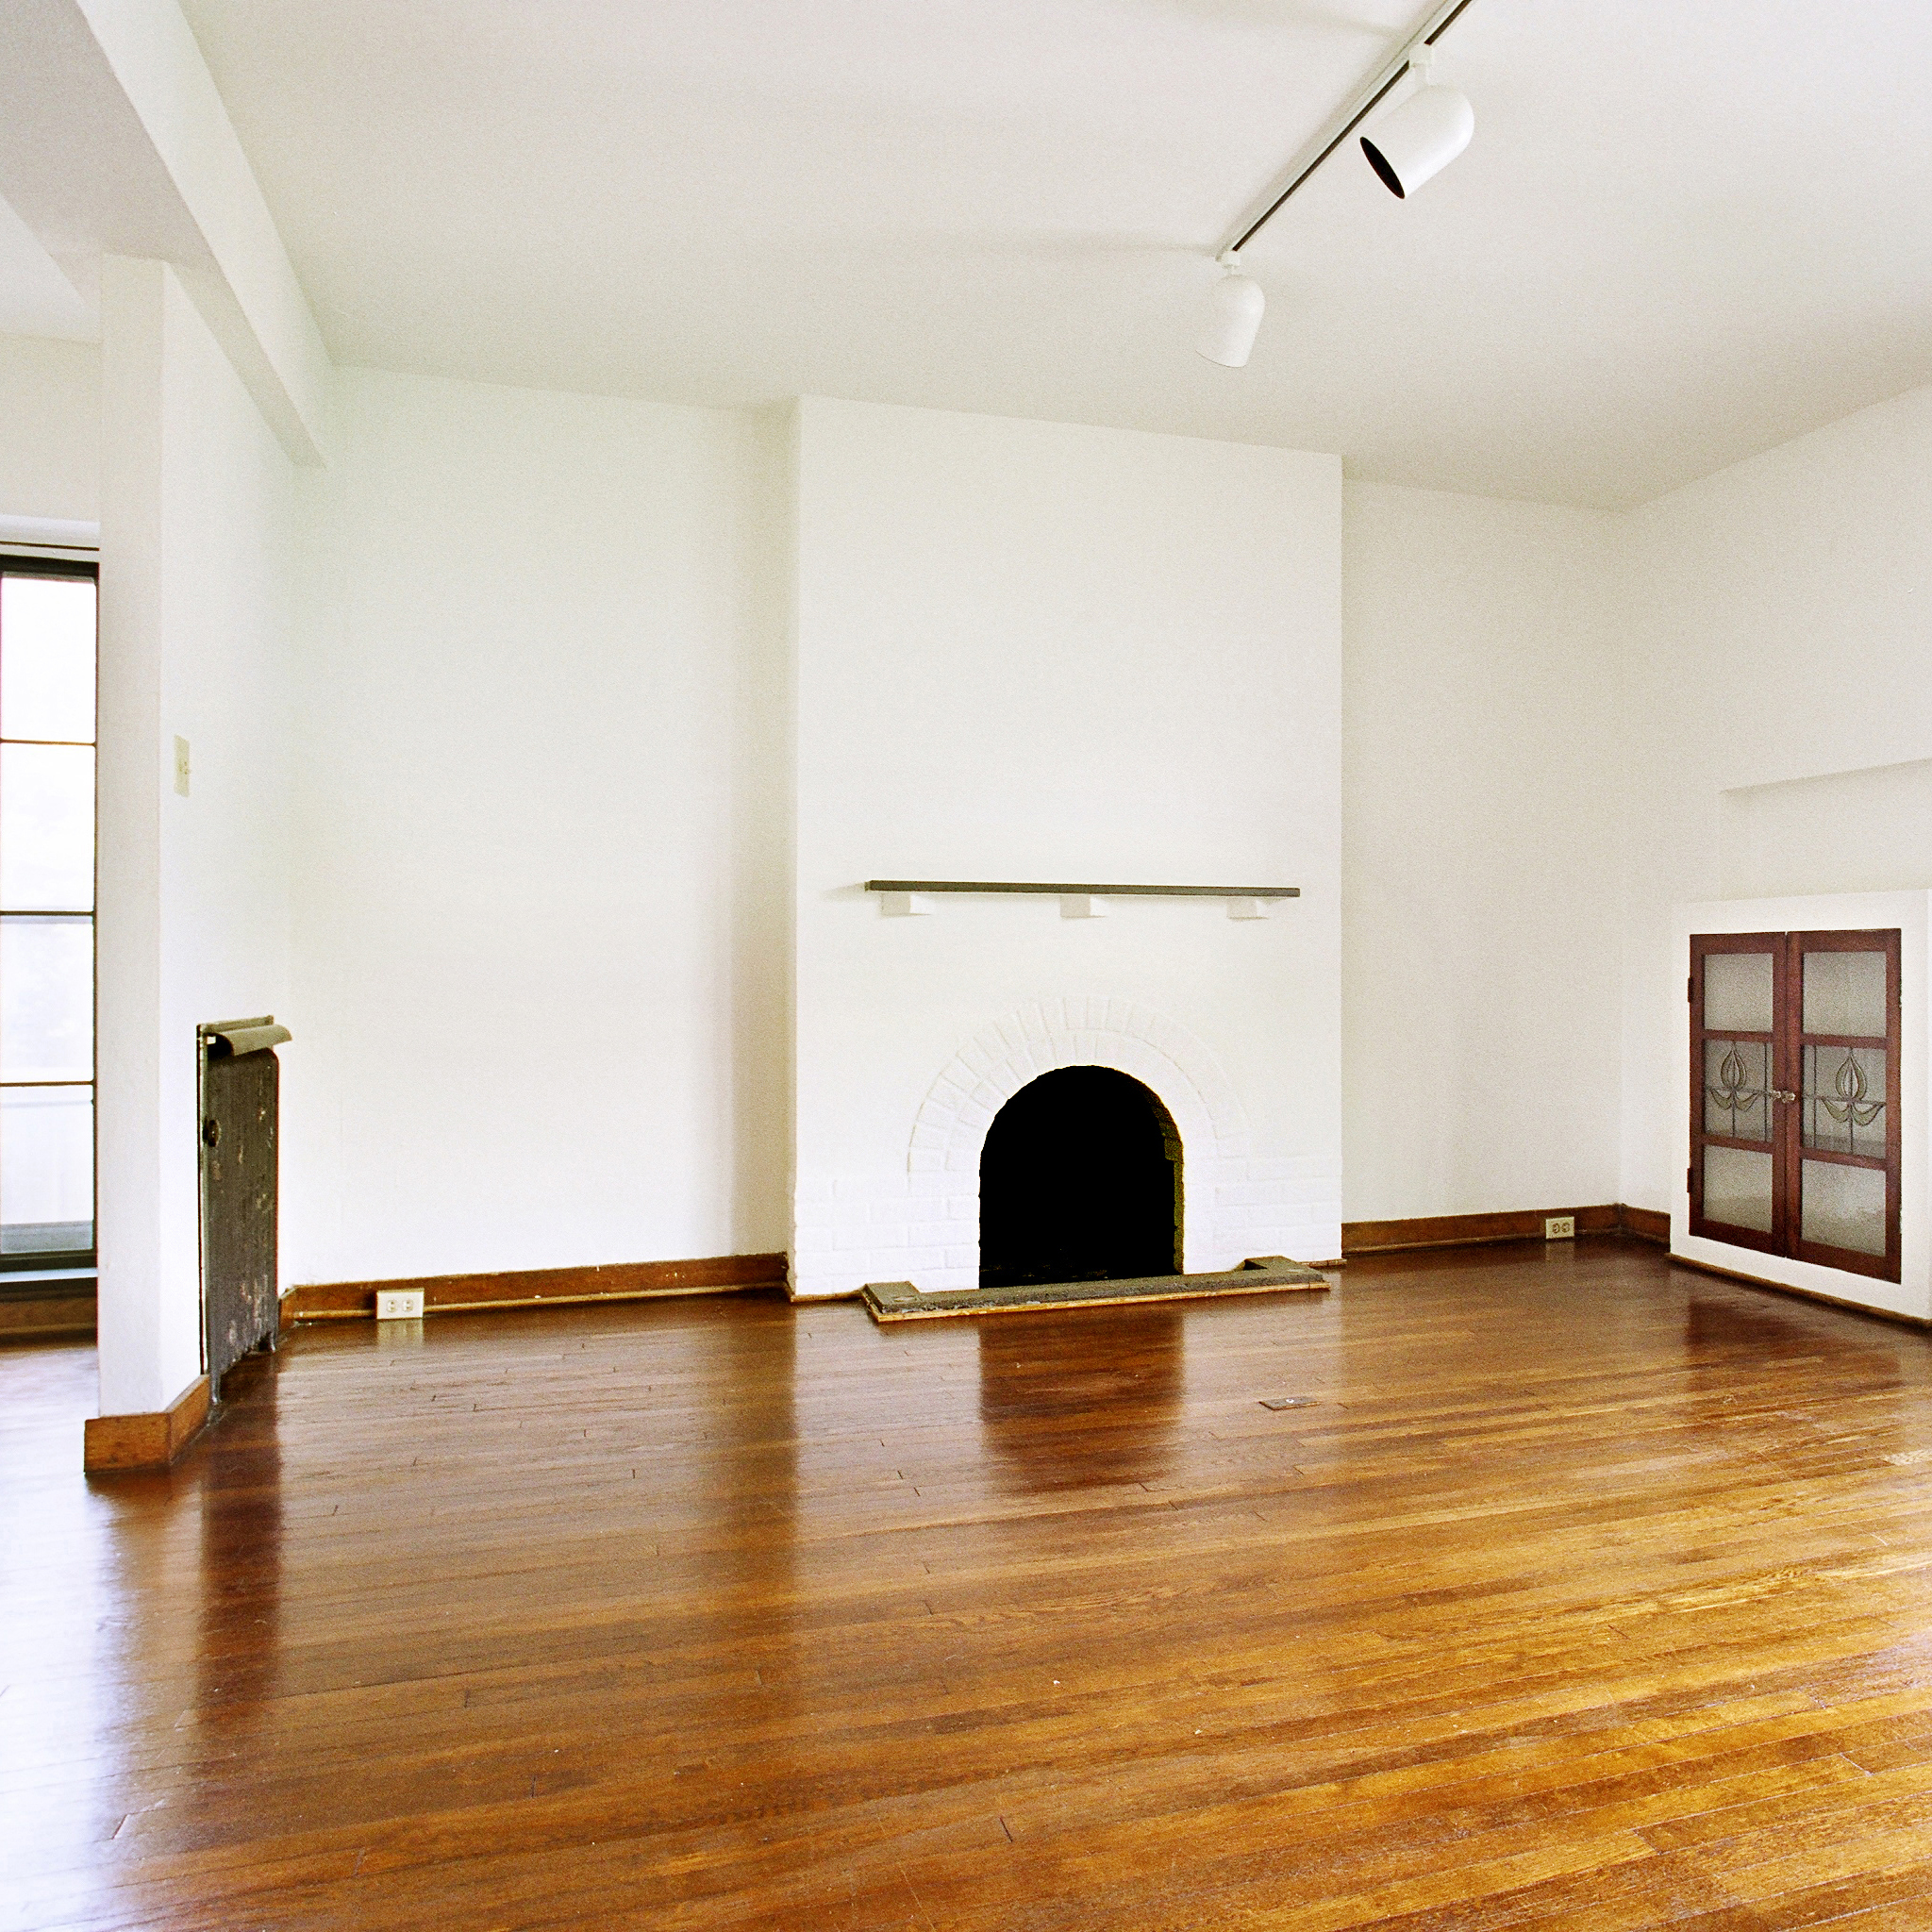 interior of 342 S. Highland Ave, Apt. 15A 1